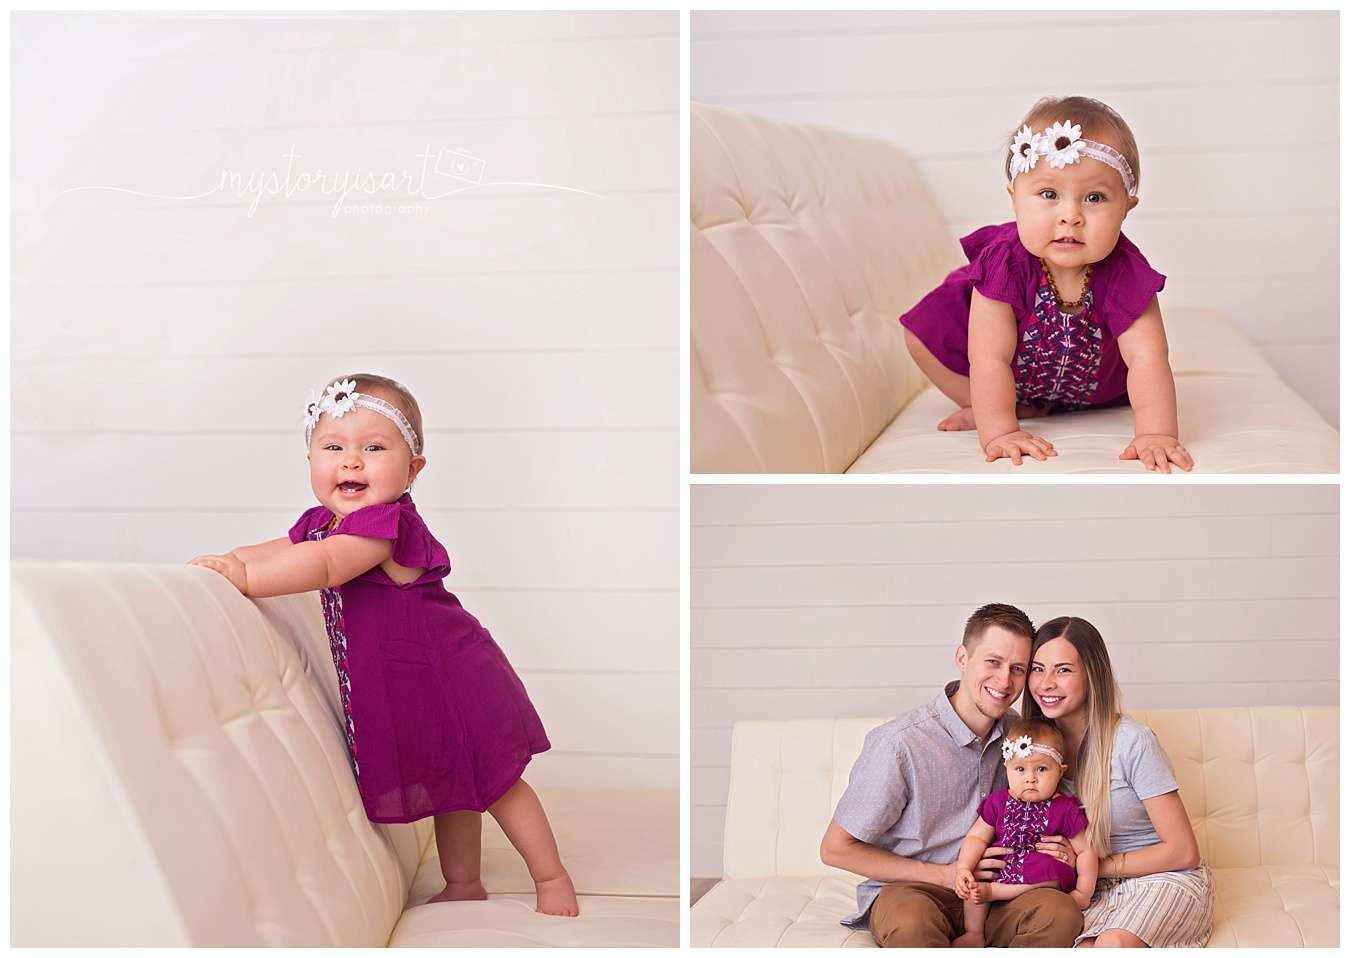 baby,baby photographer,baby photography studio,child,family,mystoryisart,newborn,orem,payson,photographer,photography,portrait,provo,salem,spanish fork,springville,studio,utah,utah county,